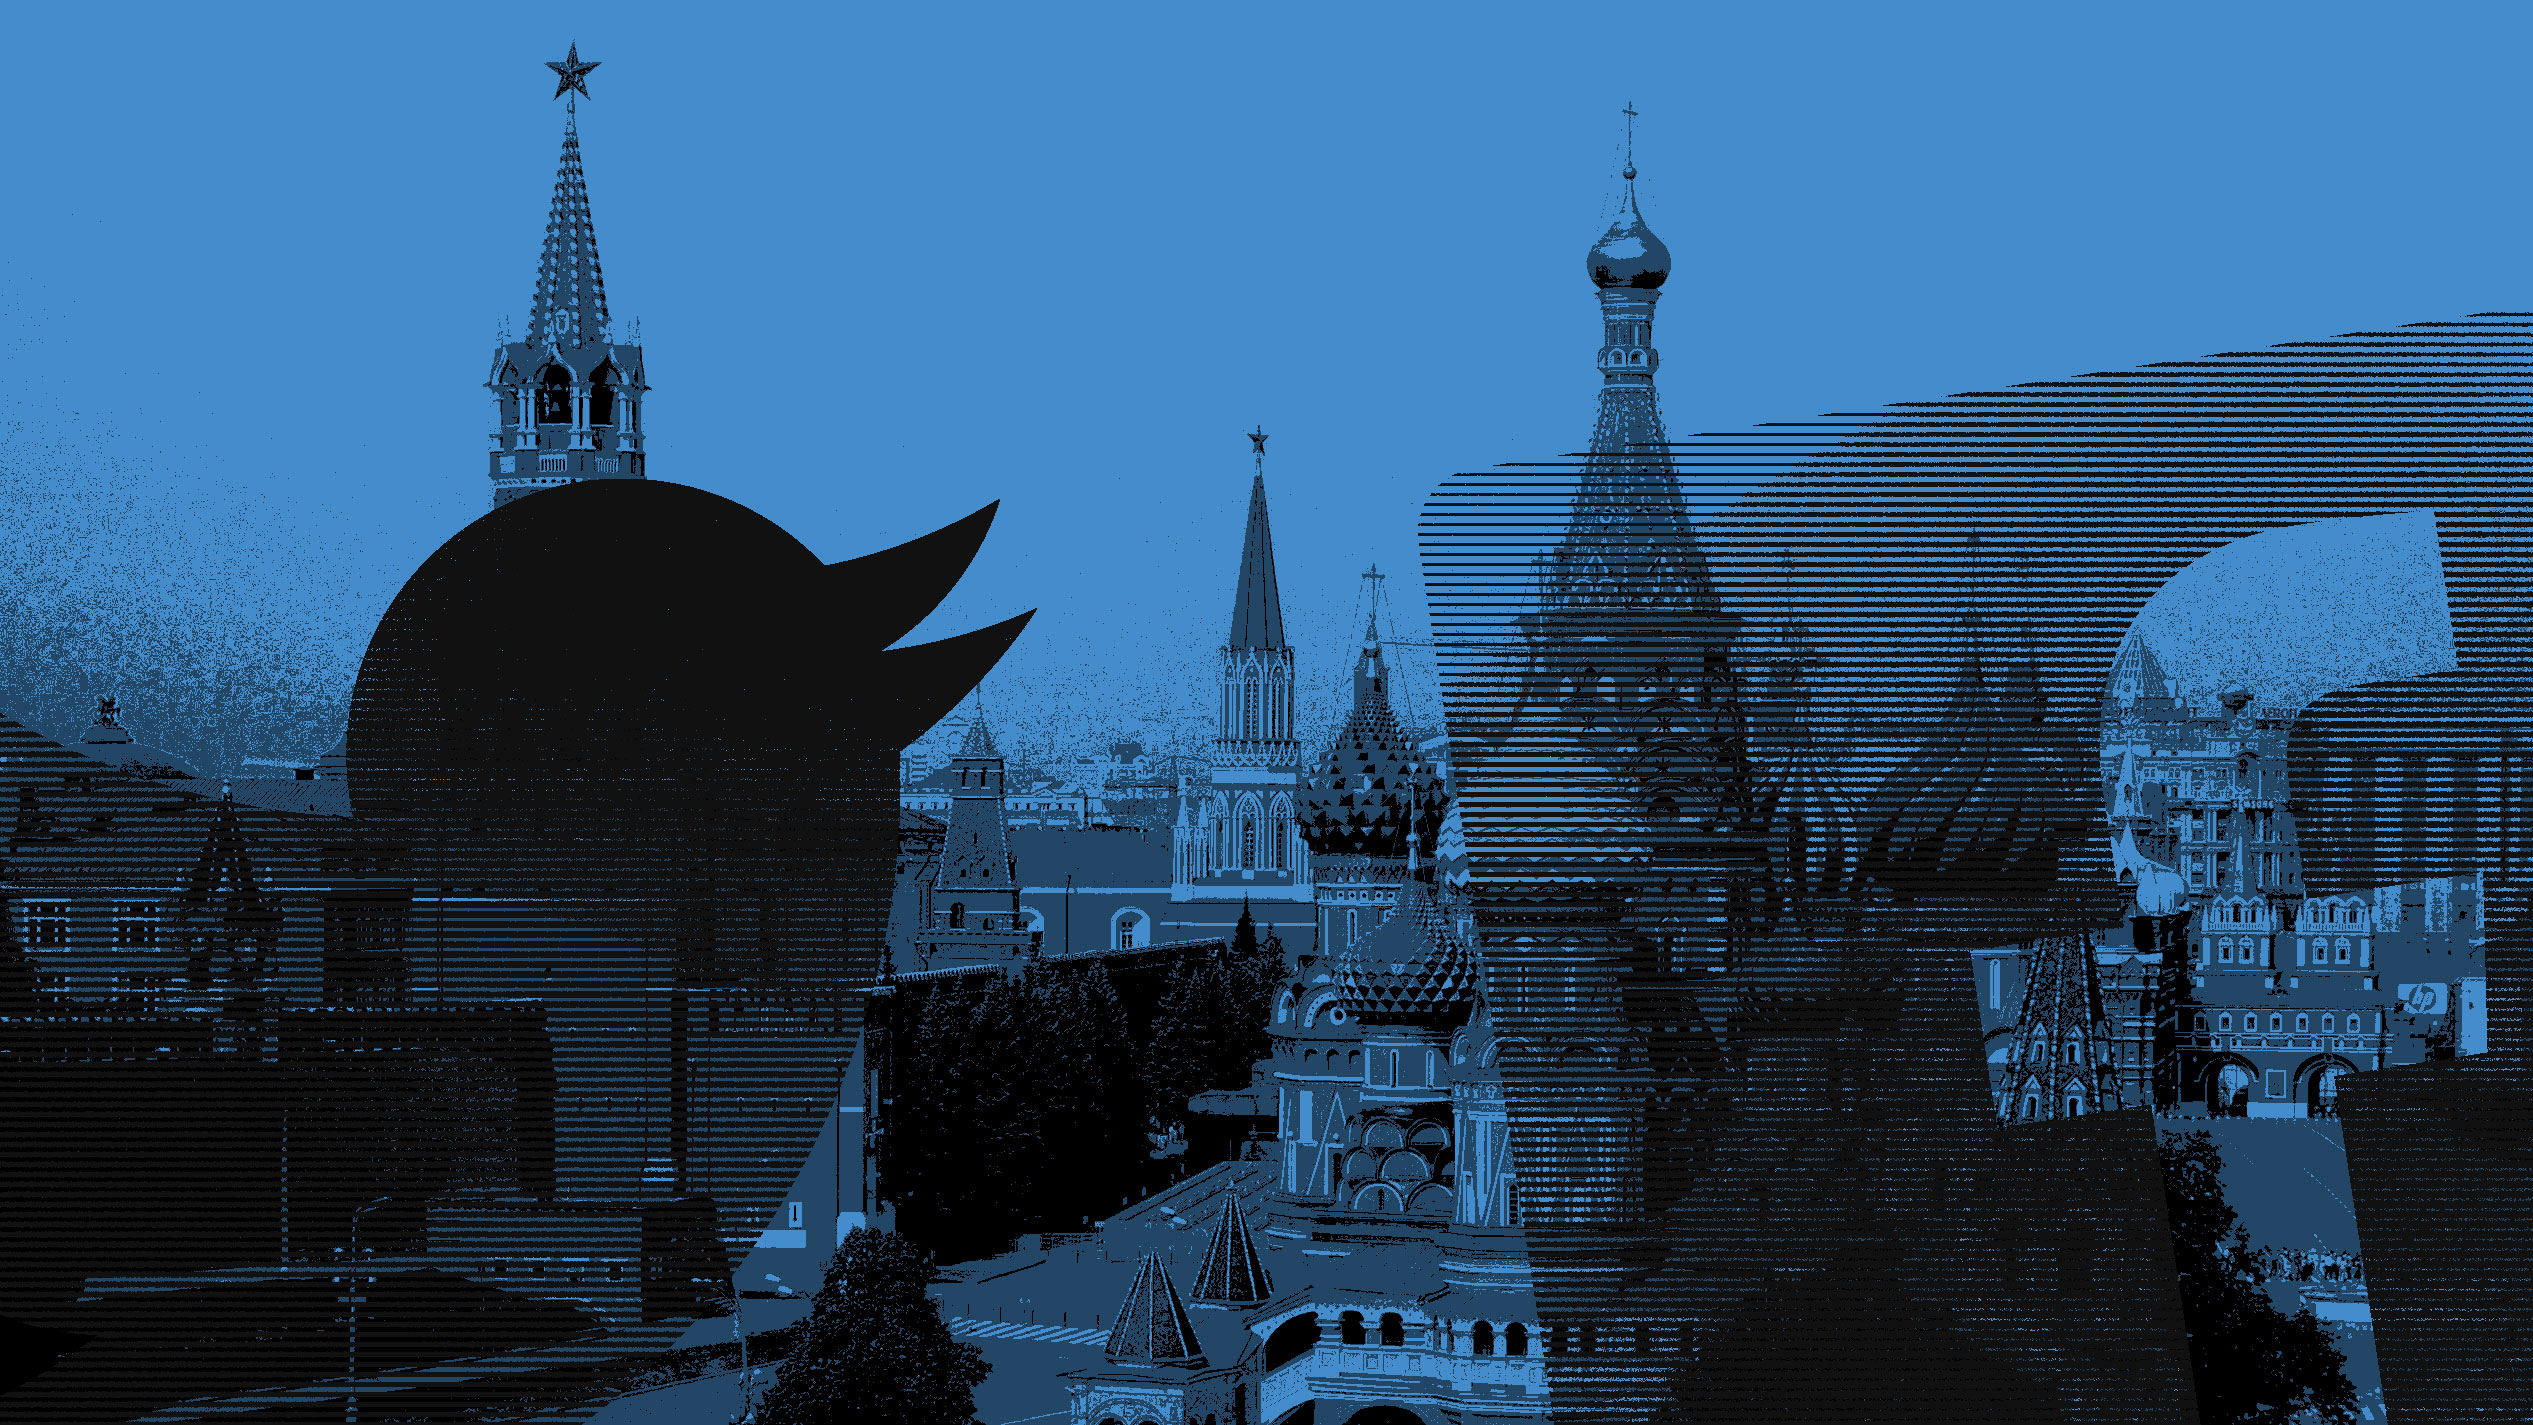 Study: Russia-linked fake Twitter accounts sought to spread terrorist-related social division in the UK